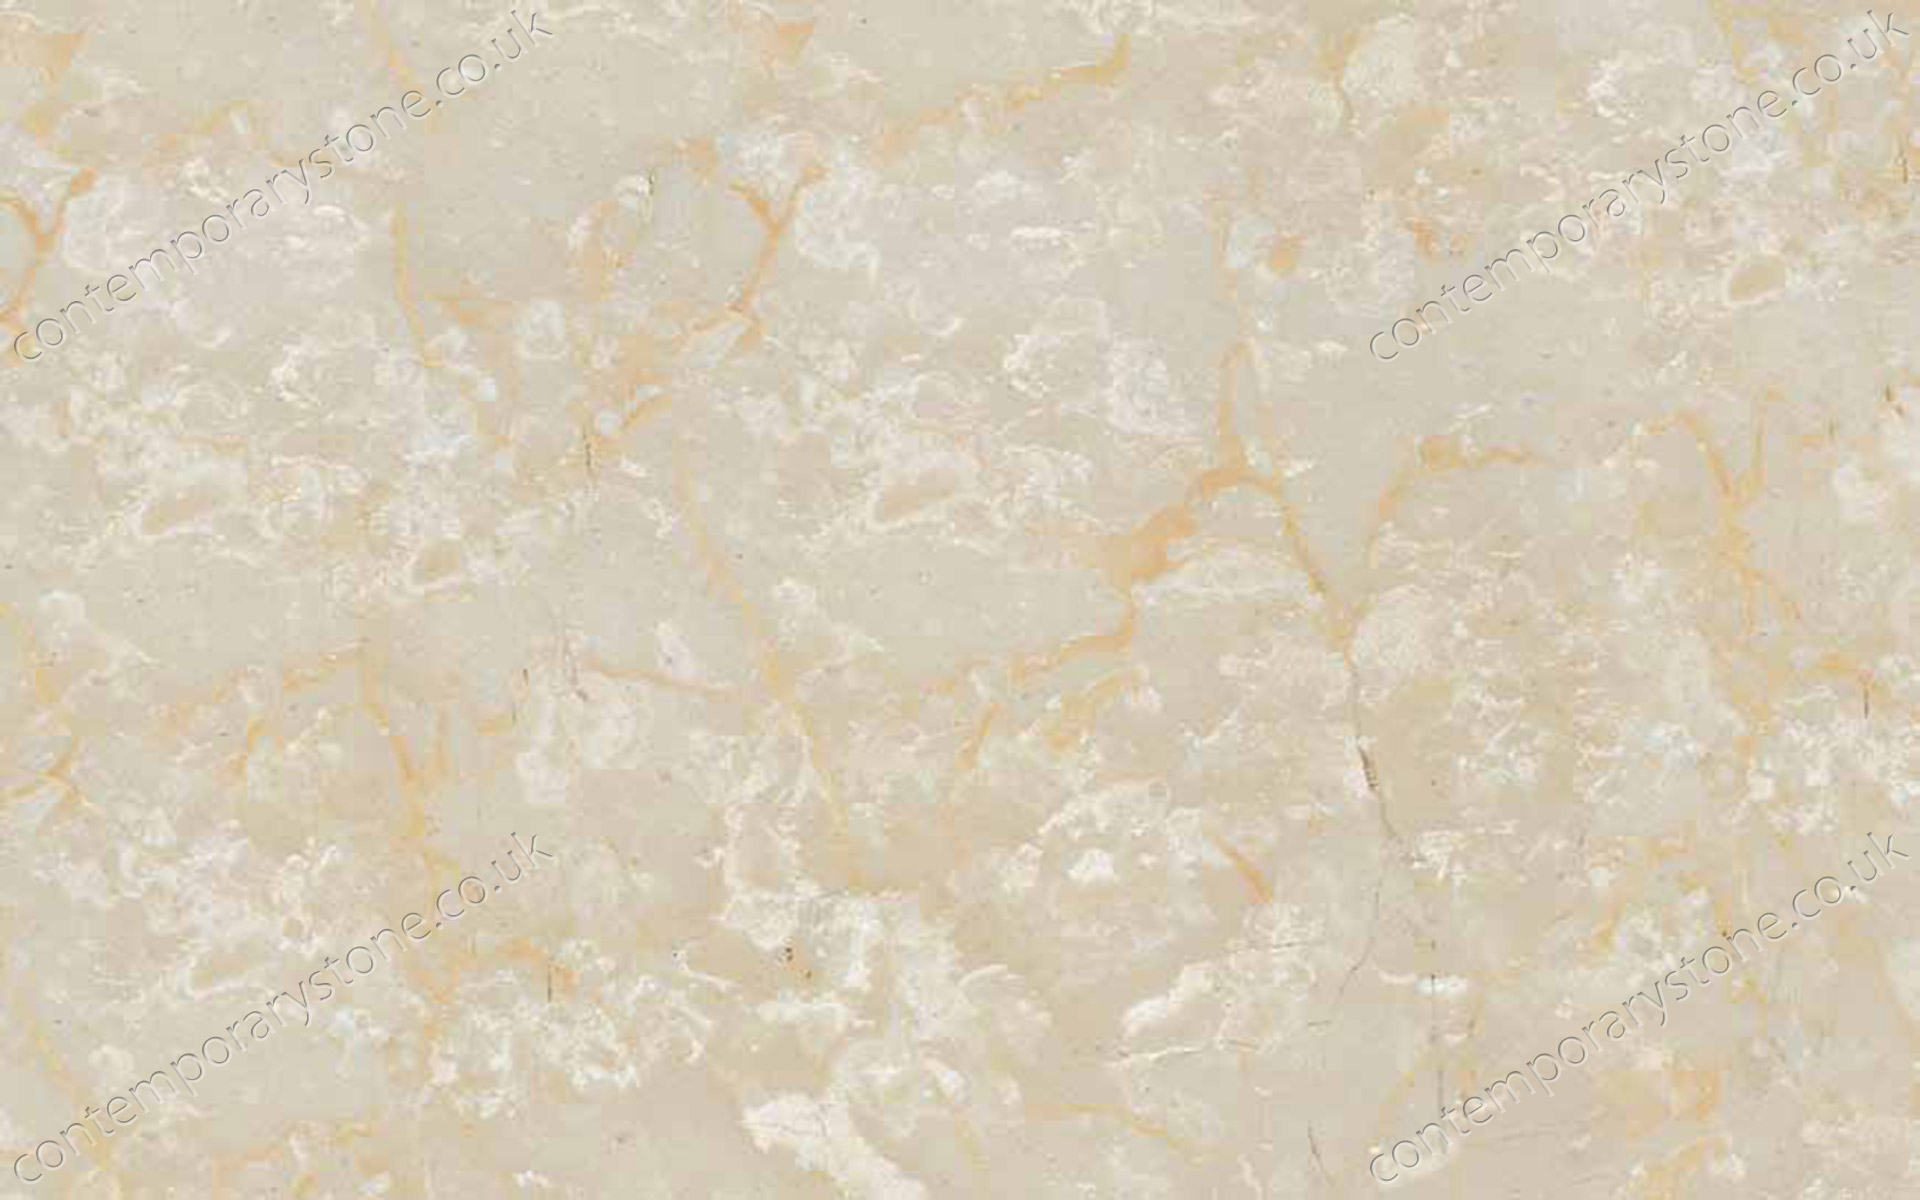 Botticino Fiorito Light marble close-up